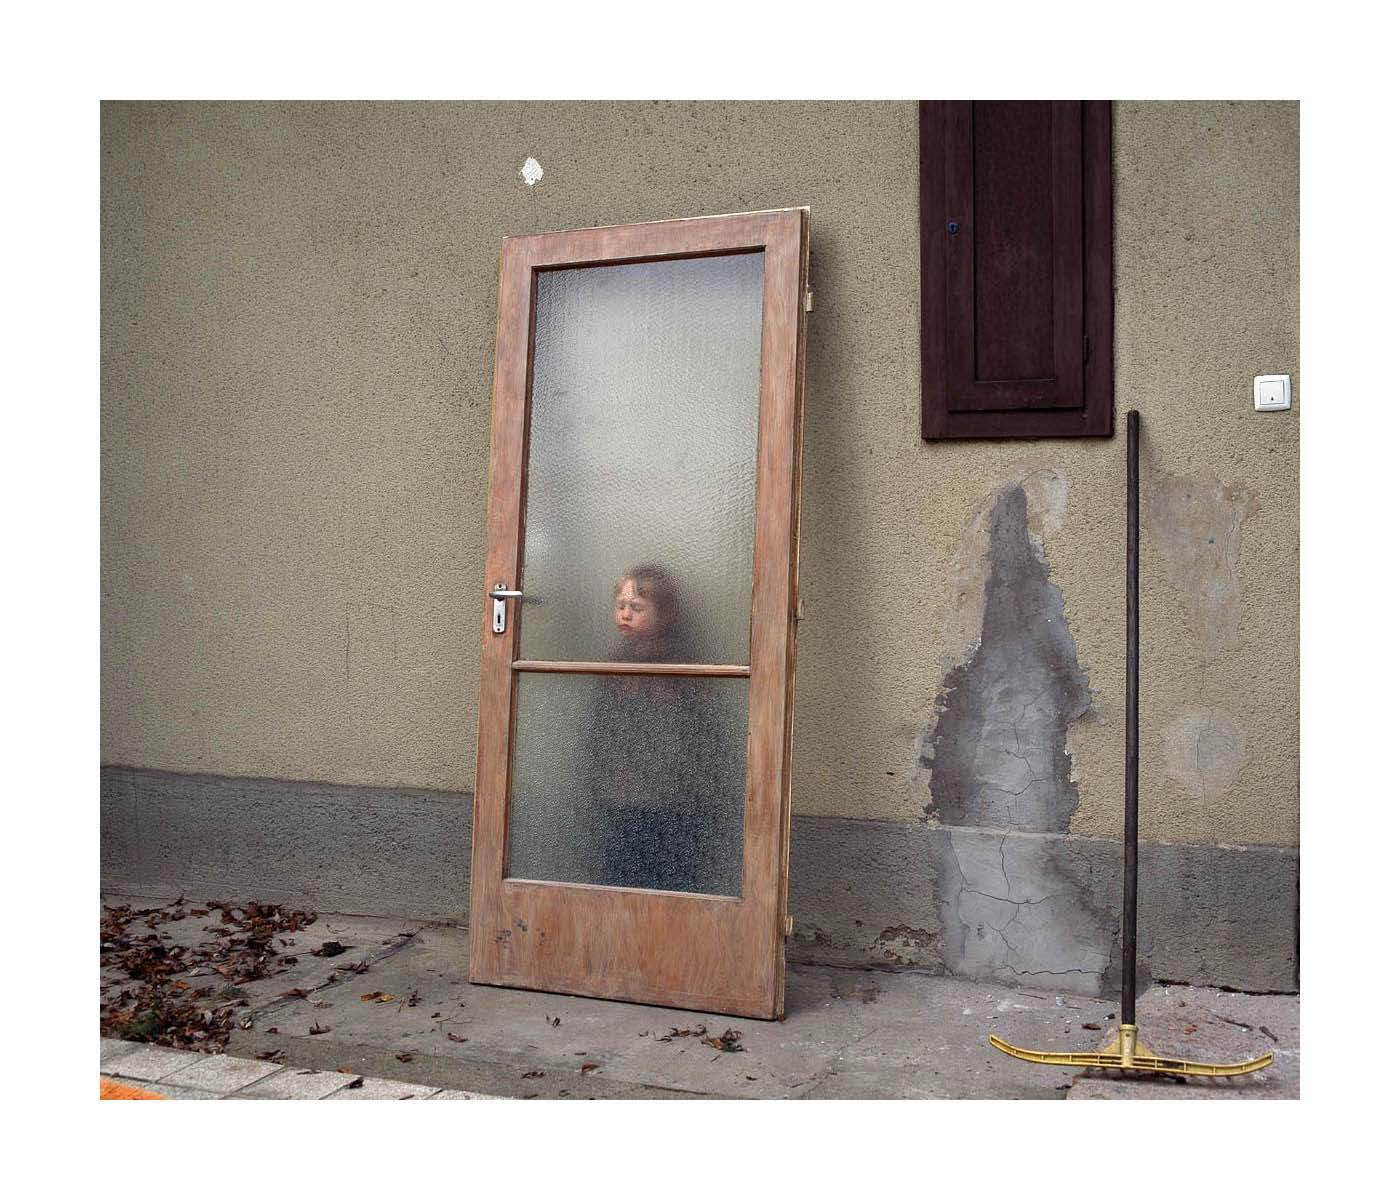 Kudász Gábor Arion: Momó ajtóval/Momó with Door (Közép-közép sorozat/from the series Middle) 2005-2011